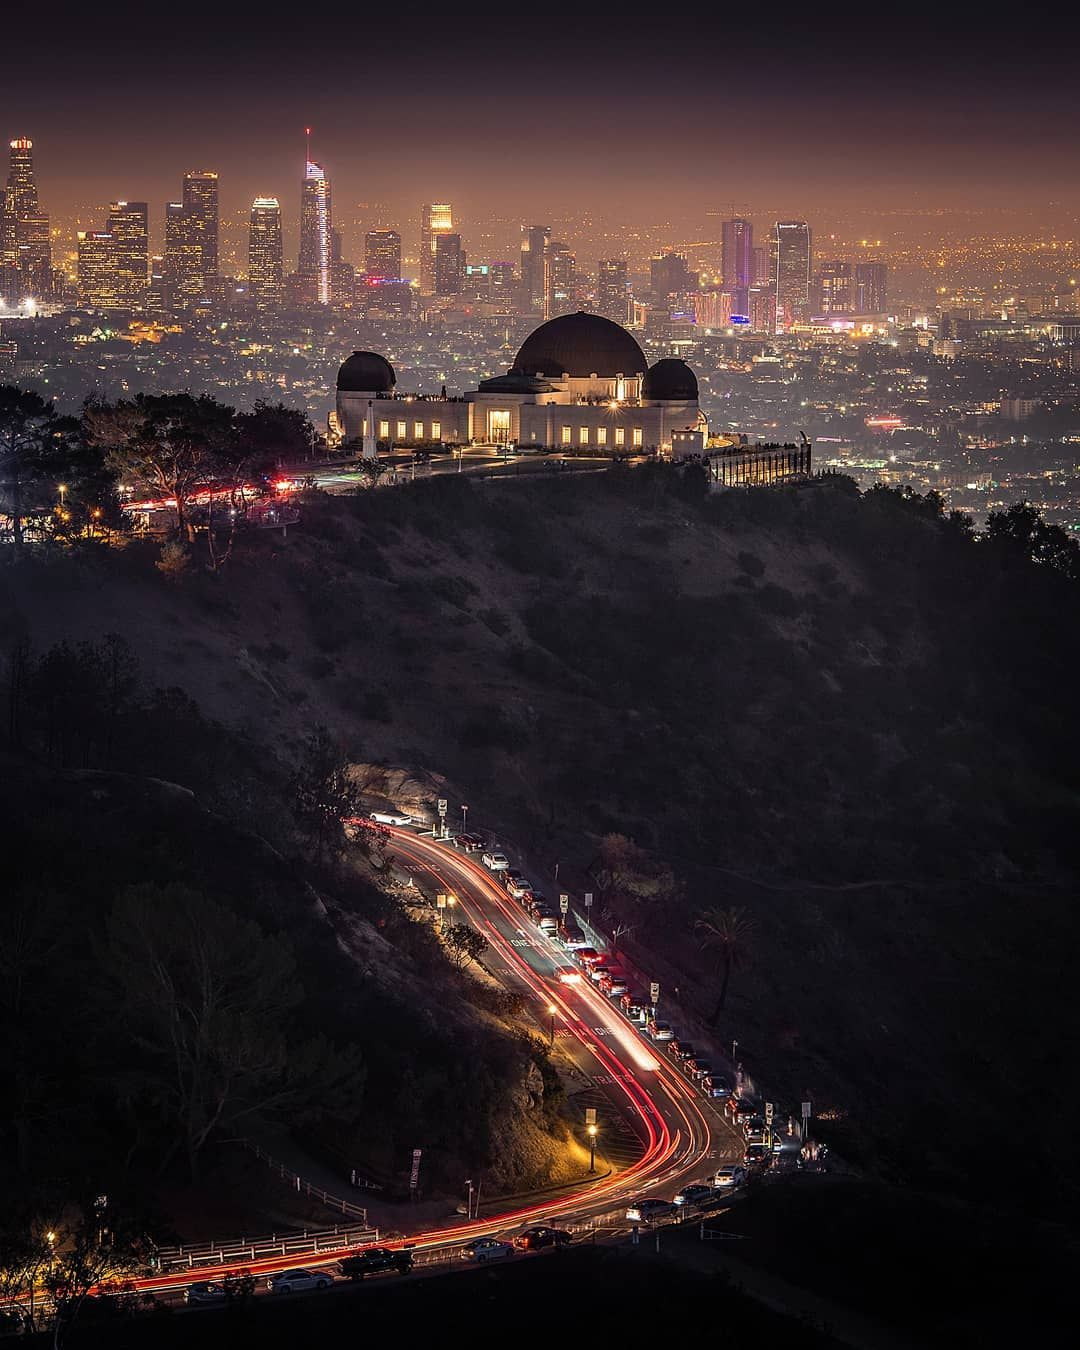 Night Lights Griffiths Observatory Los Angeles California By Gabe Rodriguez Los Angeles At Night Los Angeles California Photography Griffith Observatory